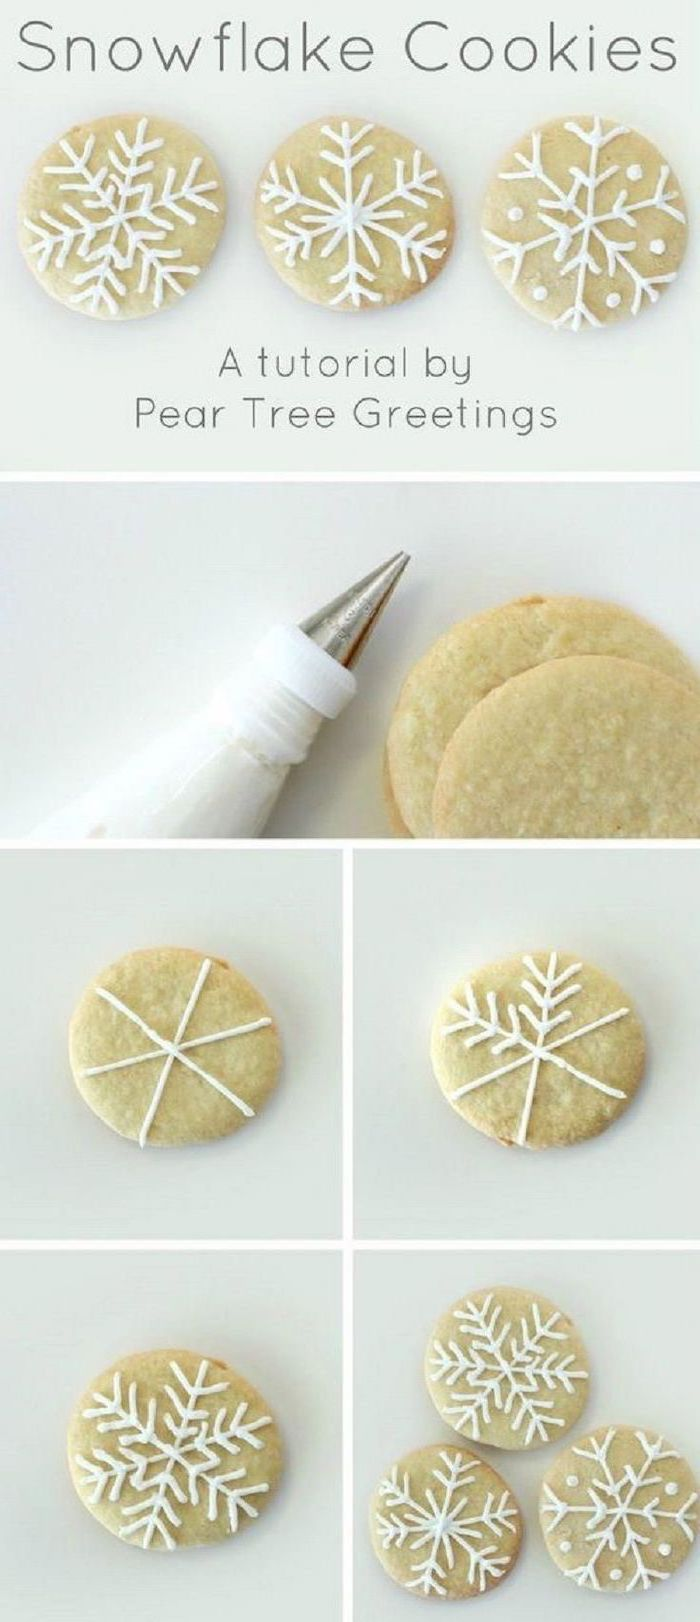 how to decorate snowflake cookies, step by step diy tutorial, royal icing christmas cookies, photo collage